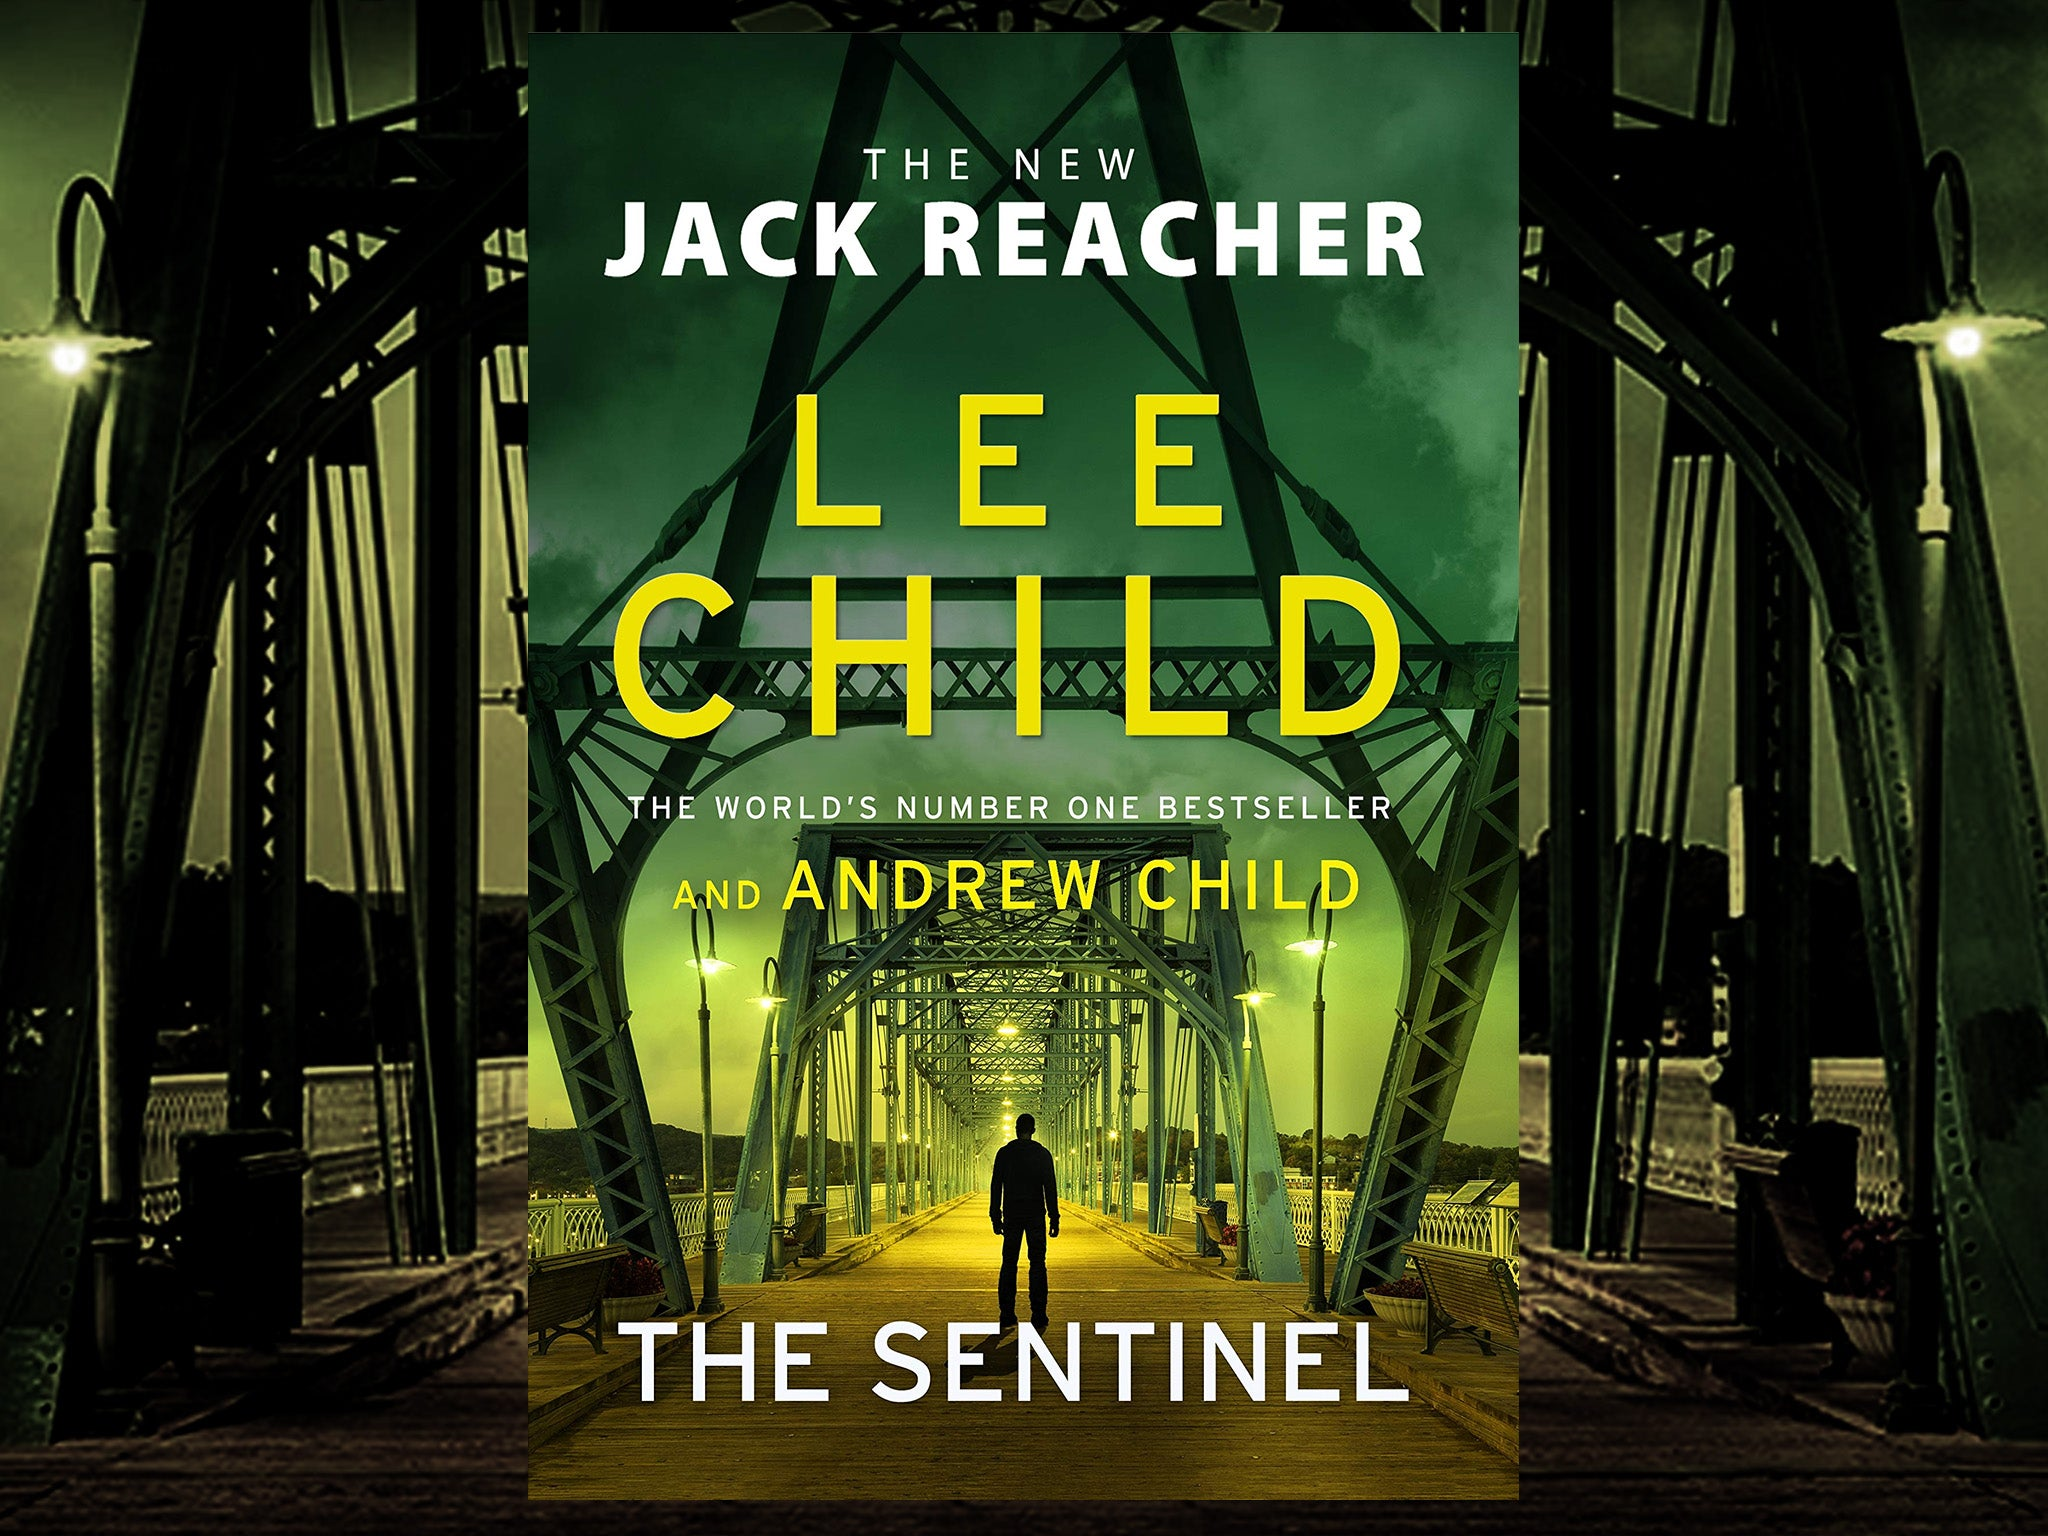 The new Jack Reacher has a case of one too many cooks